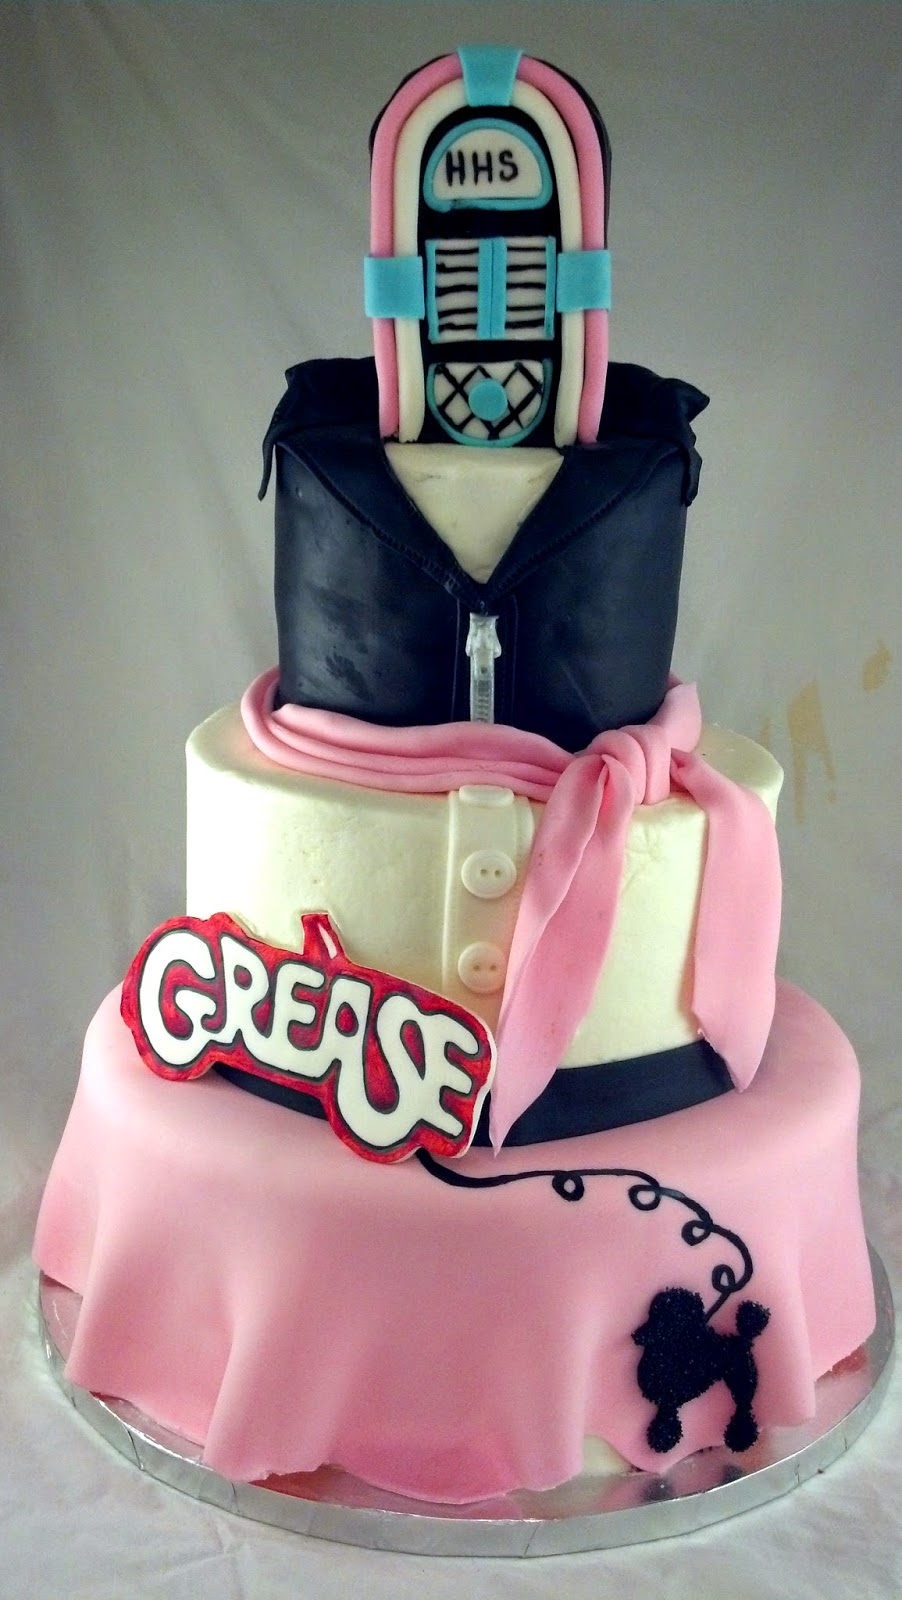 Sugar & Spice Sweets: Grease Cake